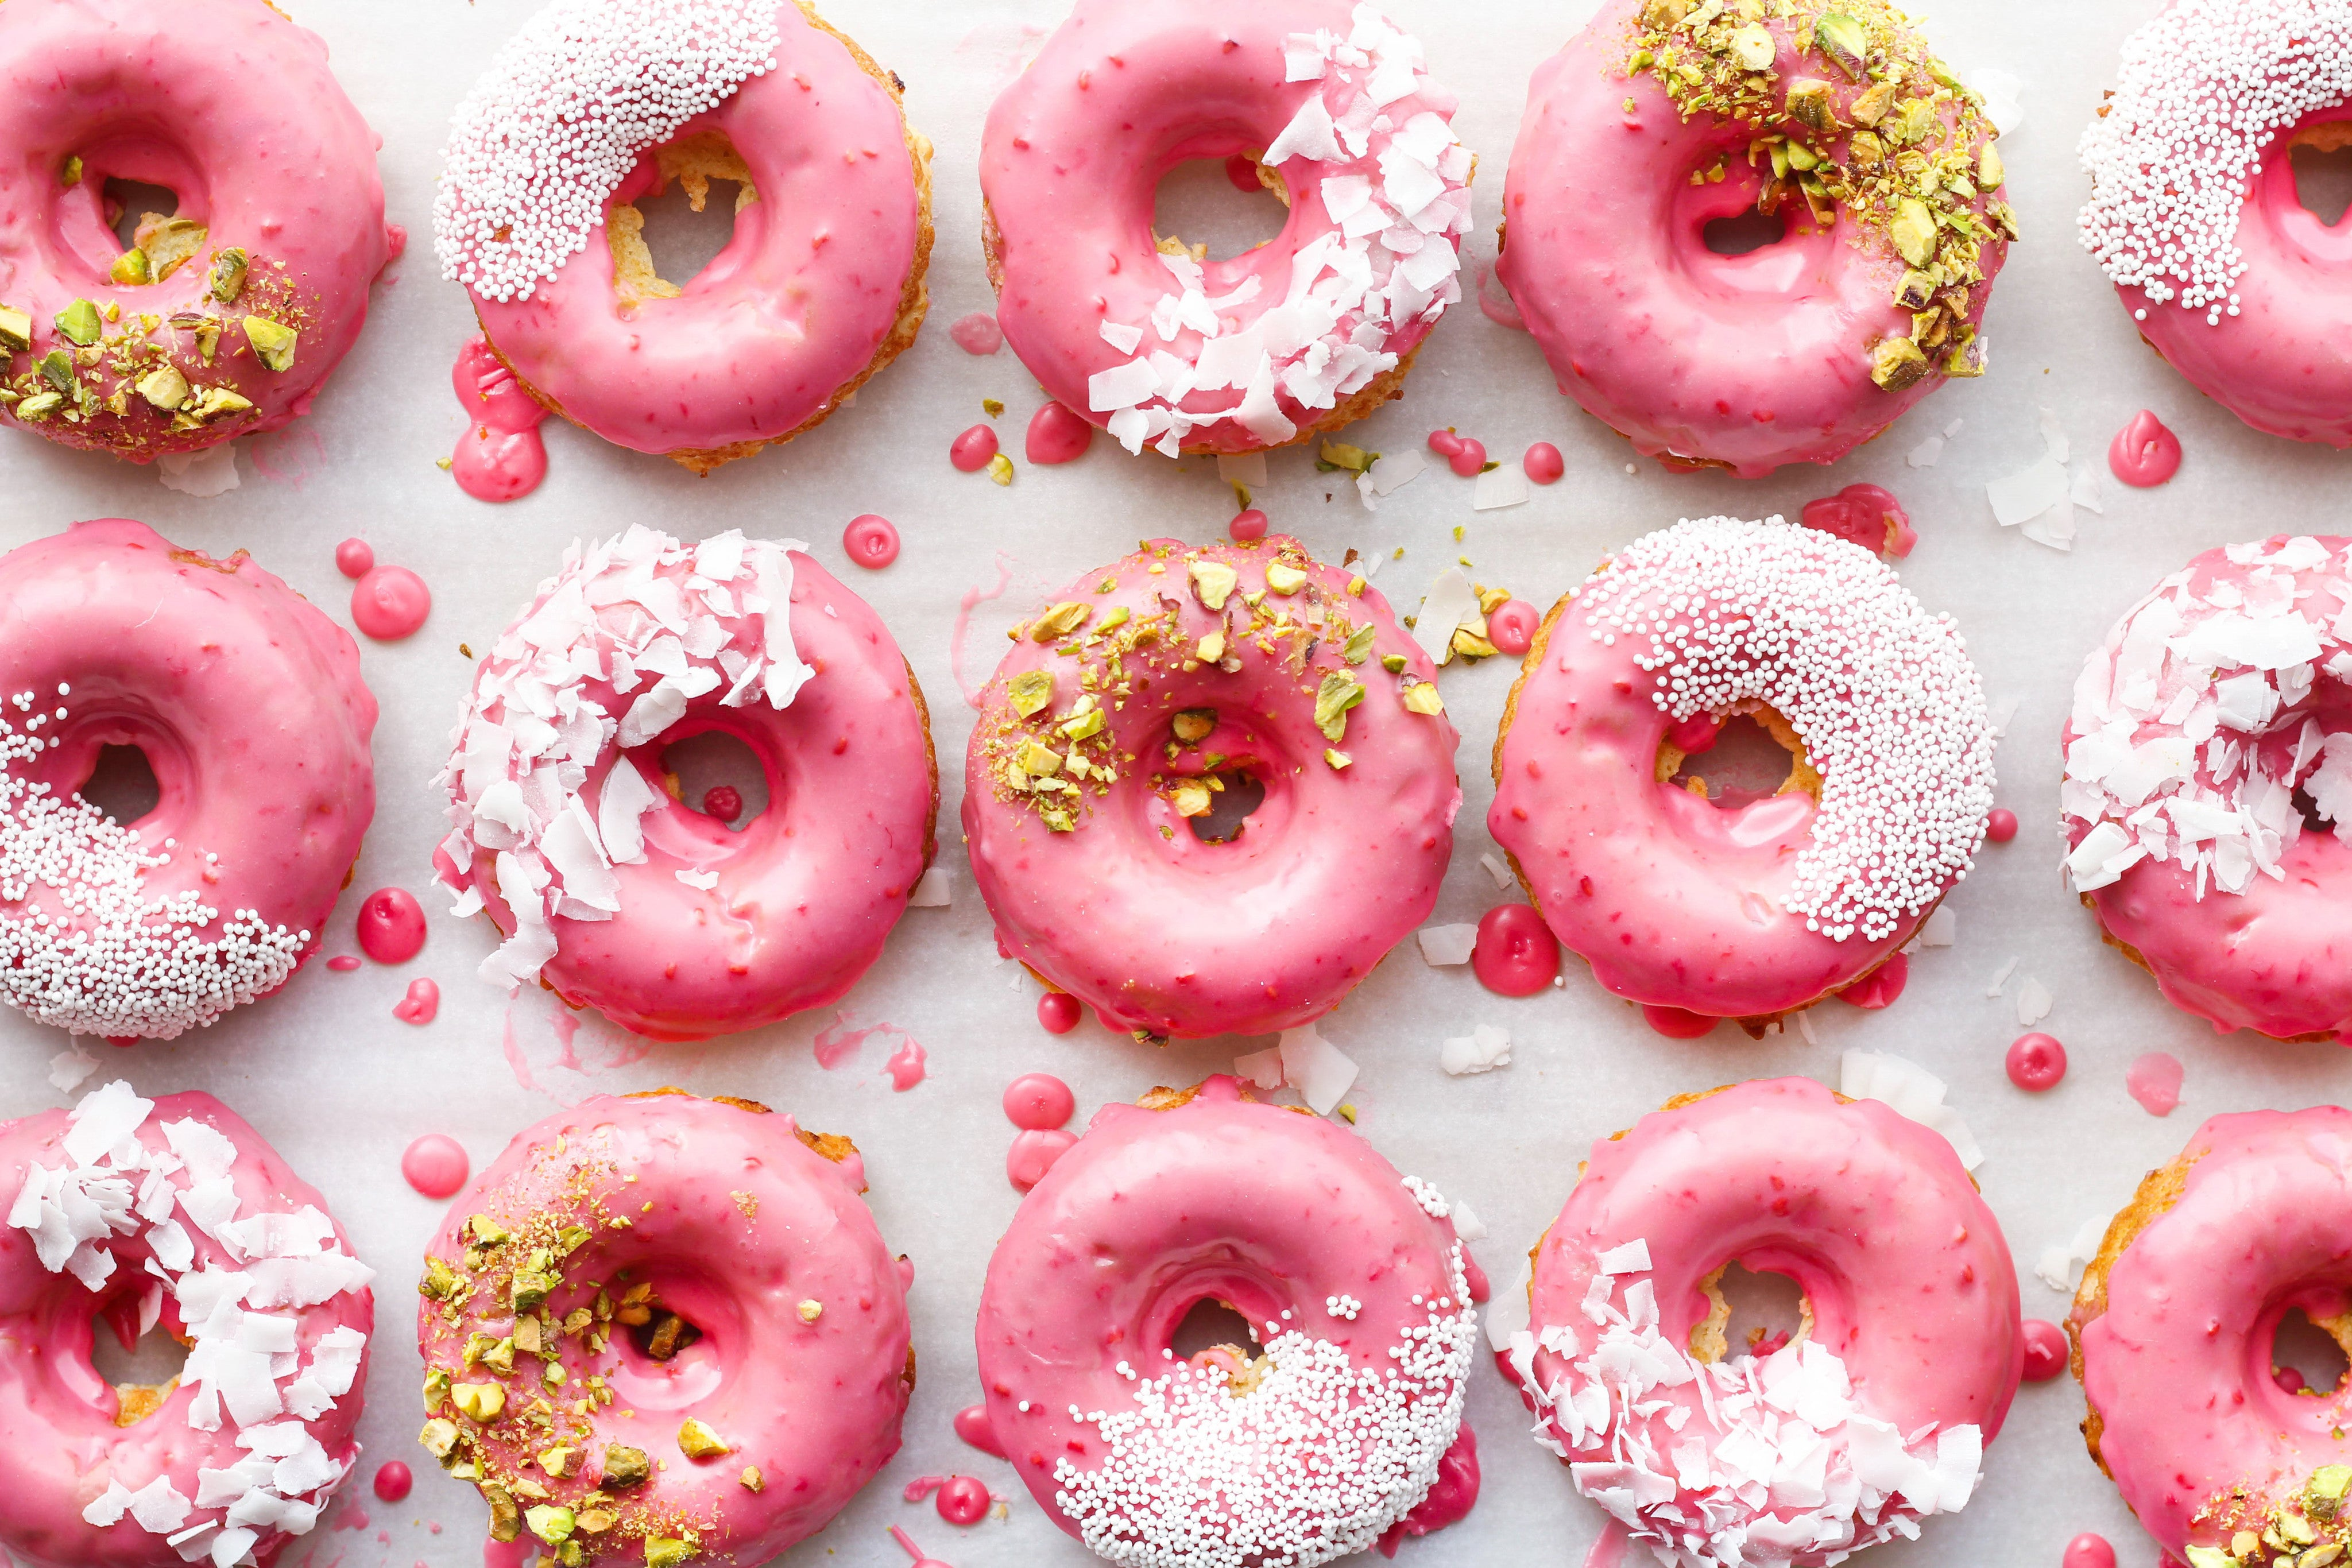 TASTY TUESDAY: Coconut Raspberry Donuts (National Donut Day!)